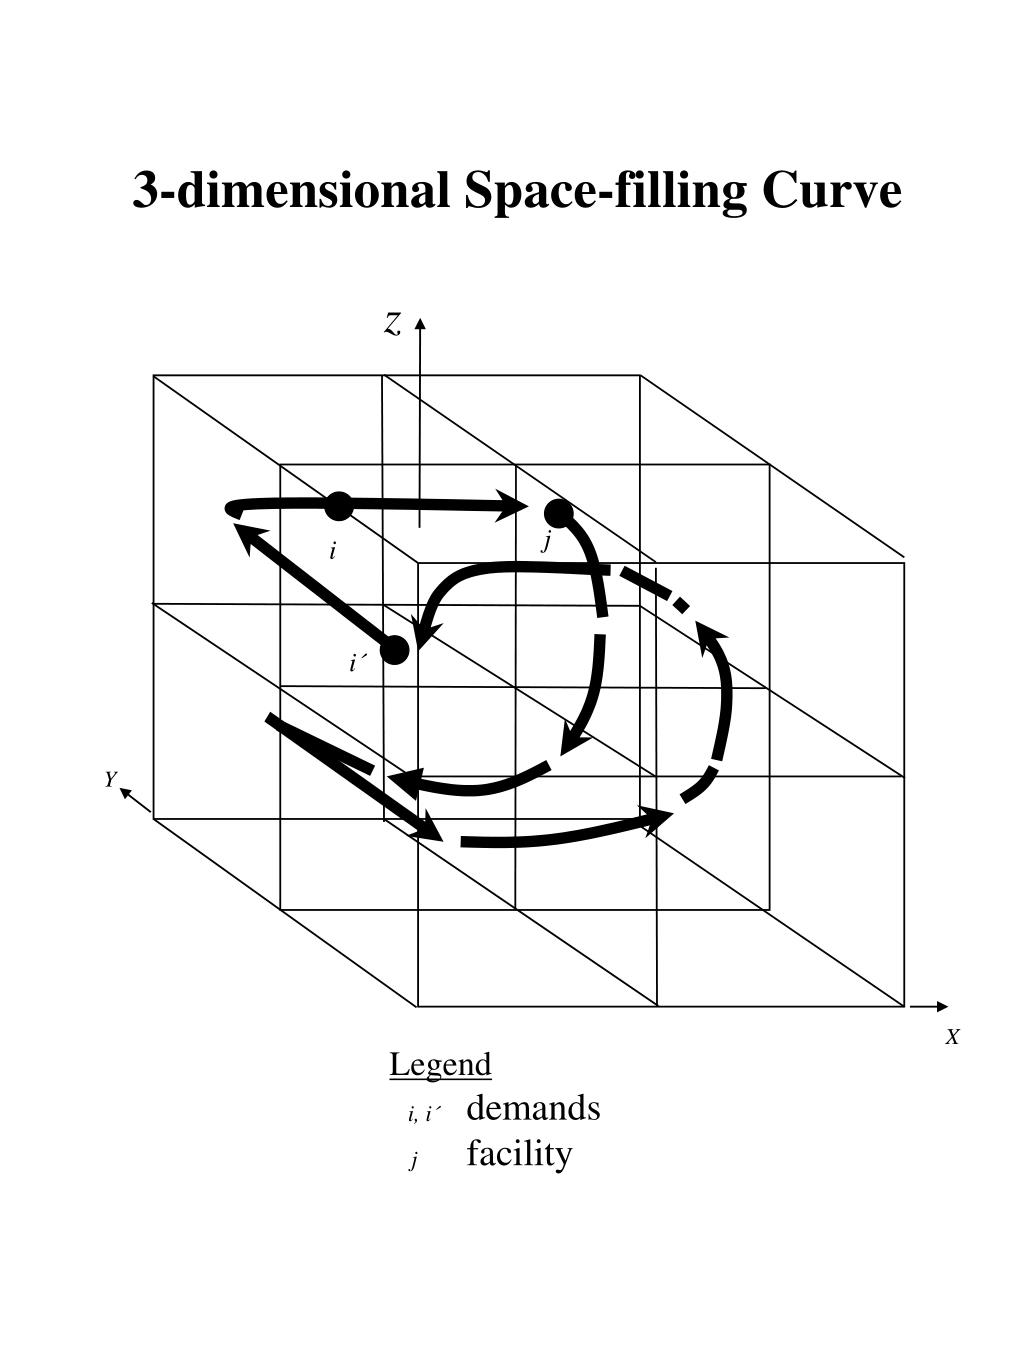 3-dimensional Space-filling Curve